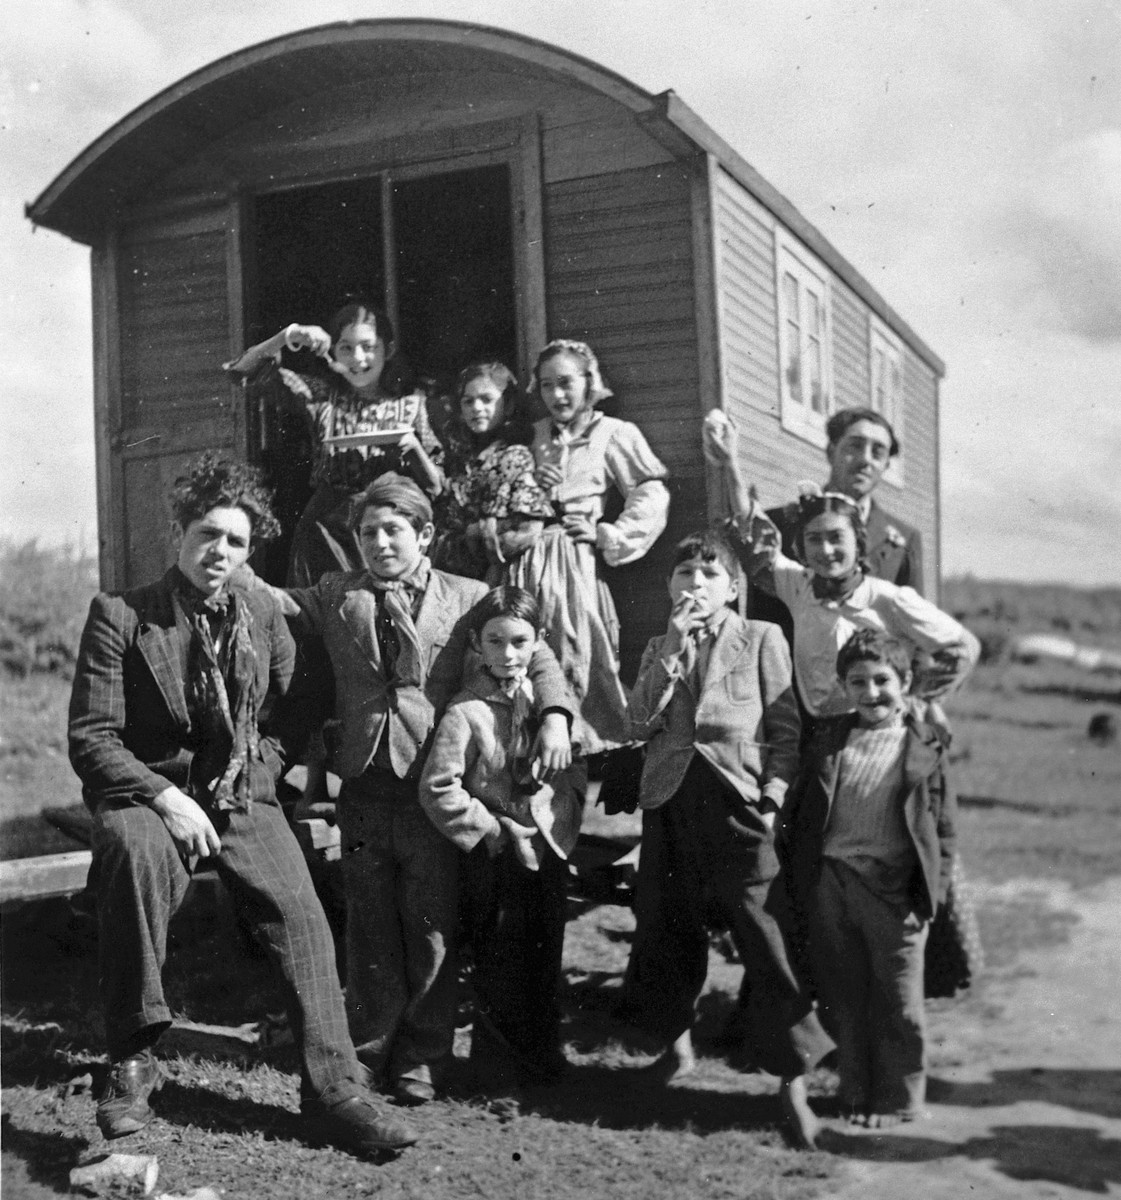 """Roma (Gypsy) children and youth pose around the entrance to a caravan.  The caption in """"The Historic Present"""" reads, """"Europe, 1930s."""""""